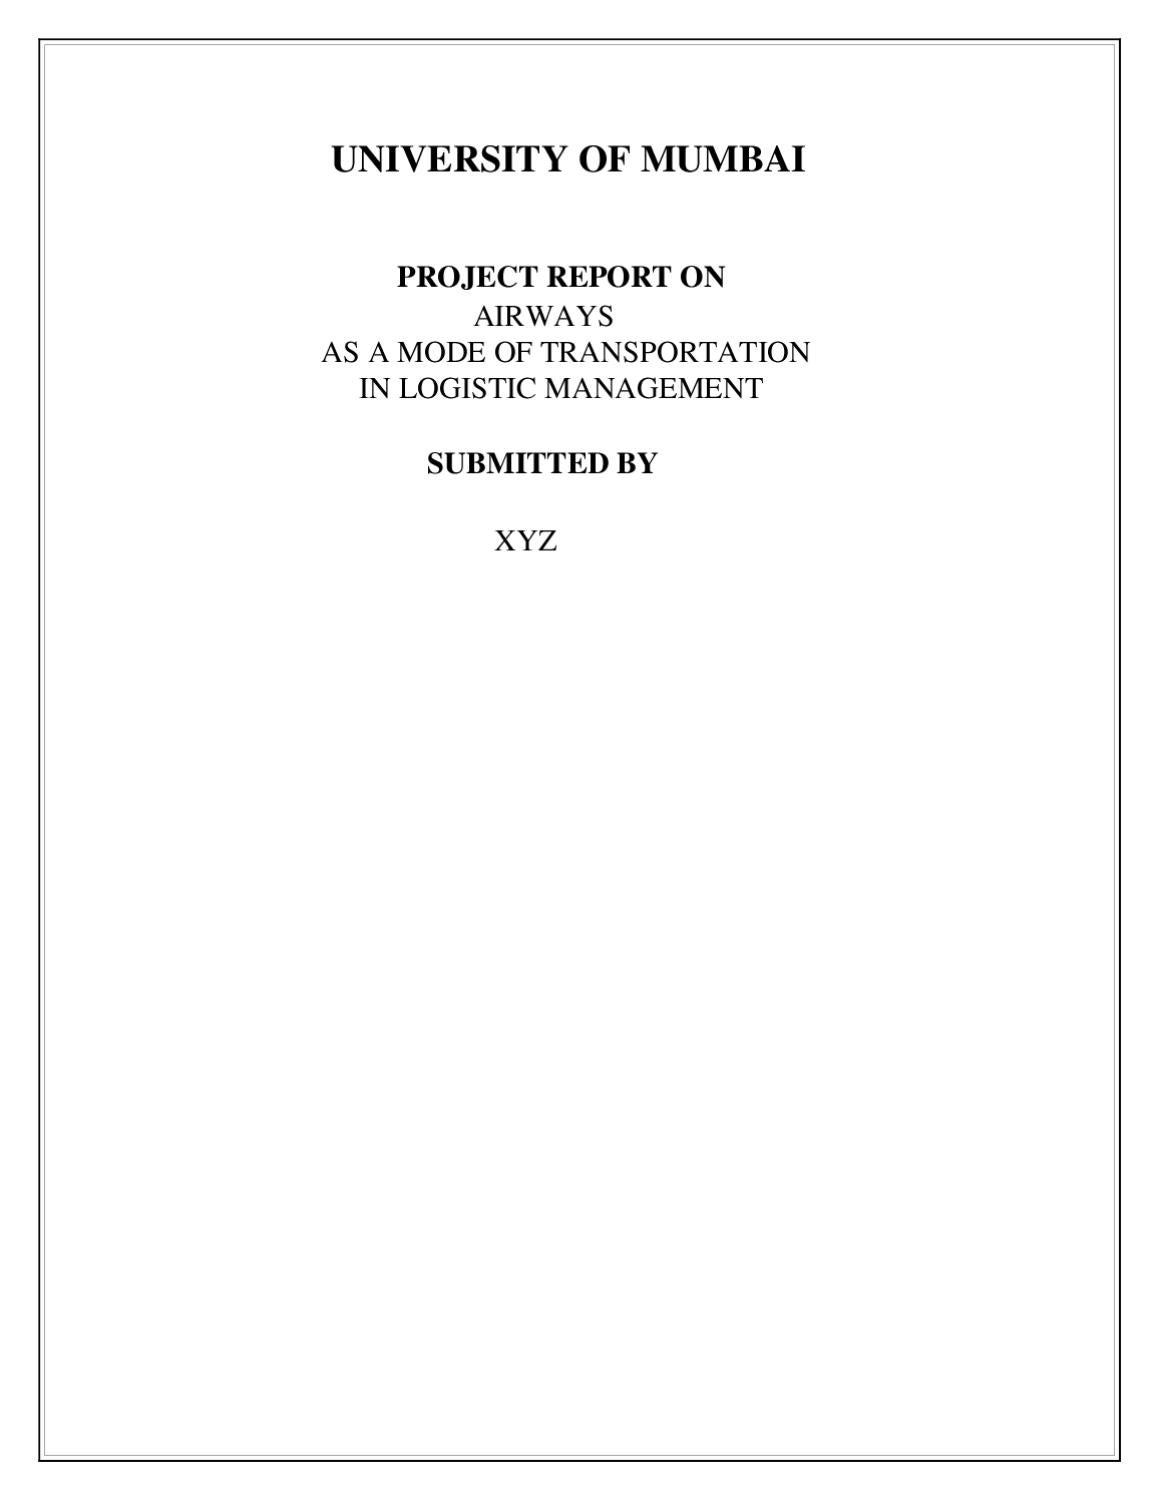 PROJECT REPORT ON AIRWAYS AS A MODE OF TRANSPORTATION IN